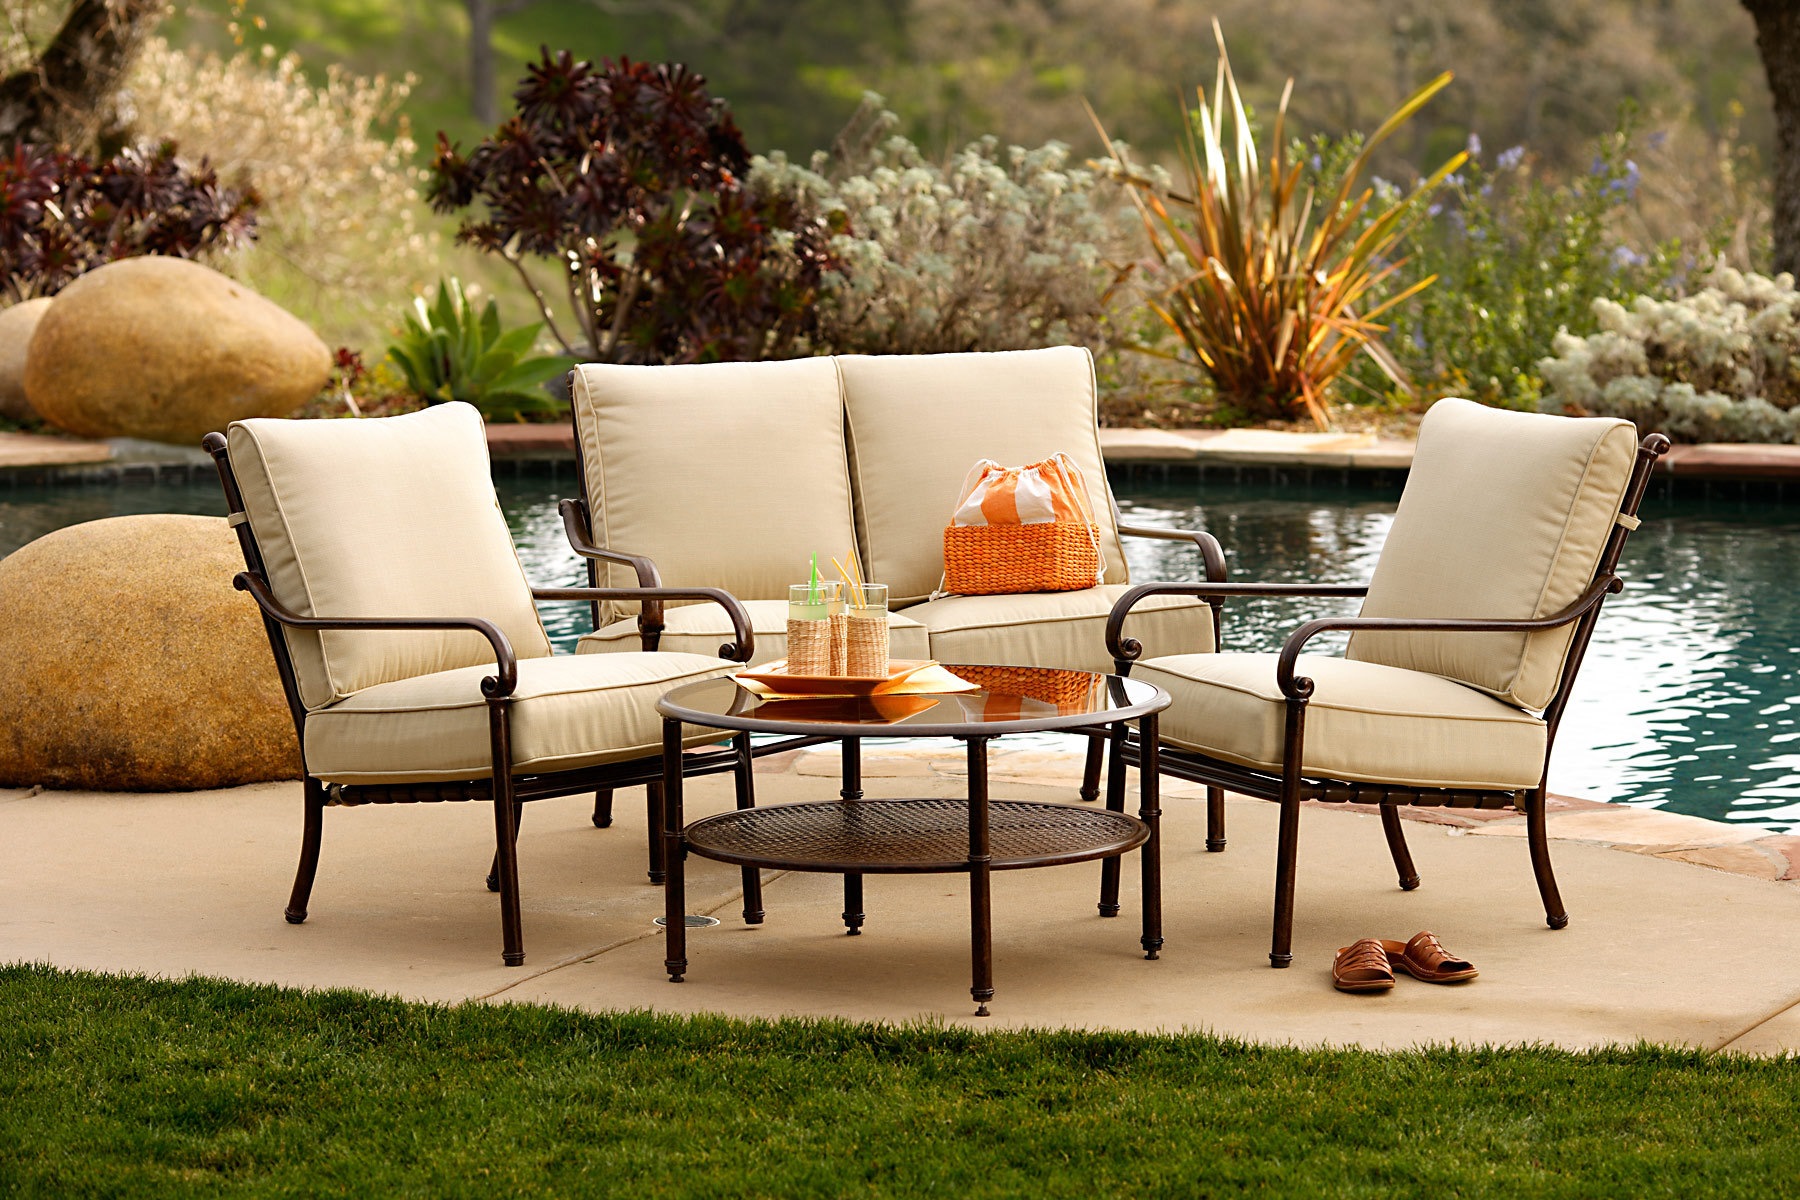 easy tips for thomasville outdoor furniture purchase on Backyard Outdoor Furniture id=66105